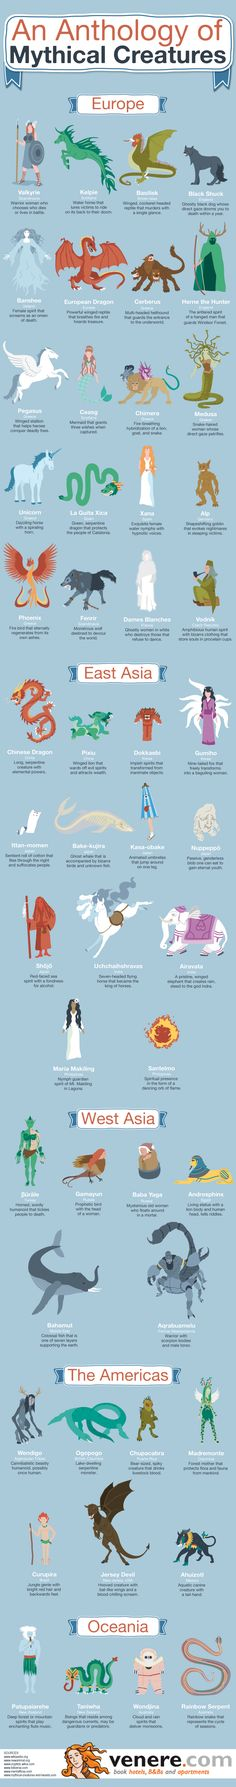 Every civilization has its own myths and legends. Let's find out the 50 most important - and weird - legendary creatures with this Infographic!